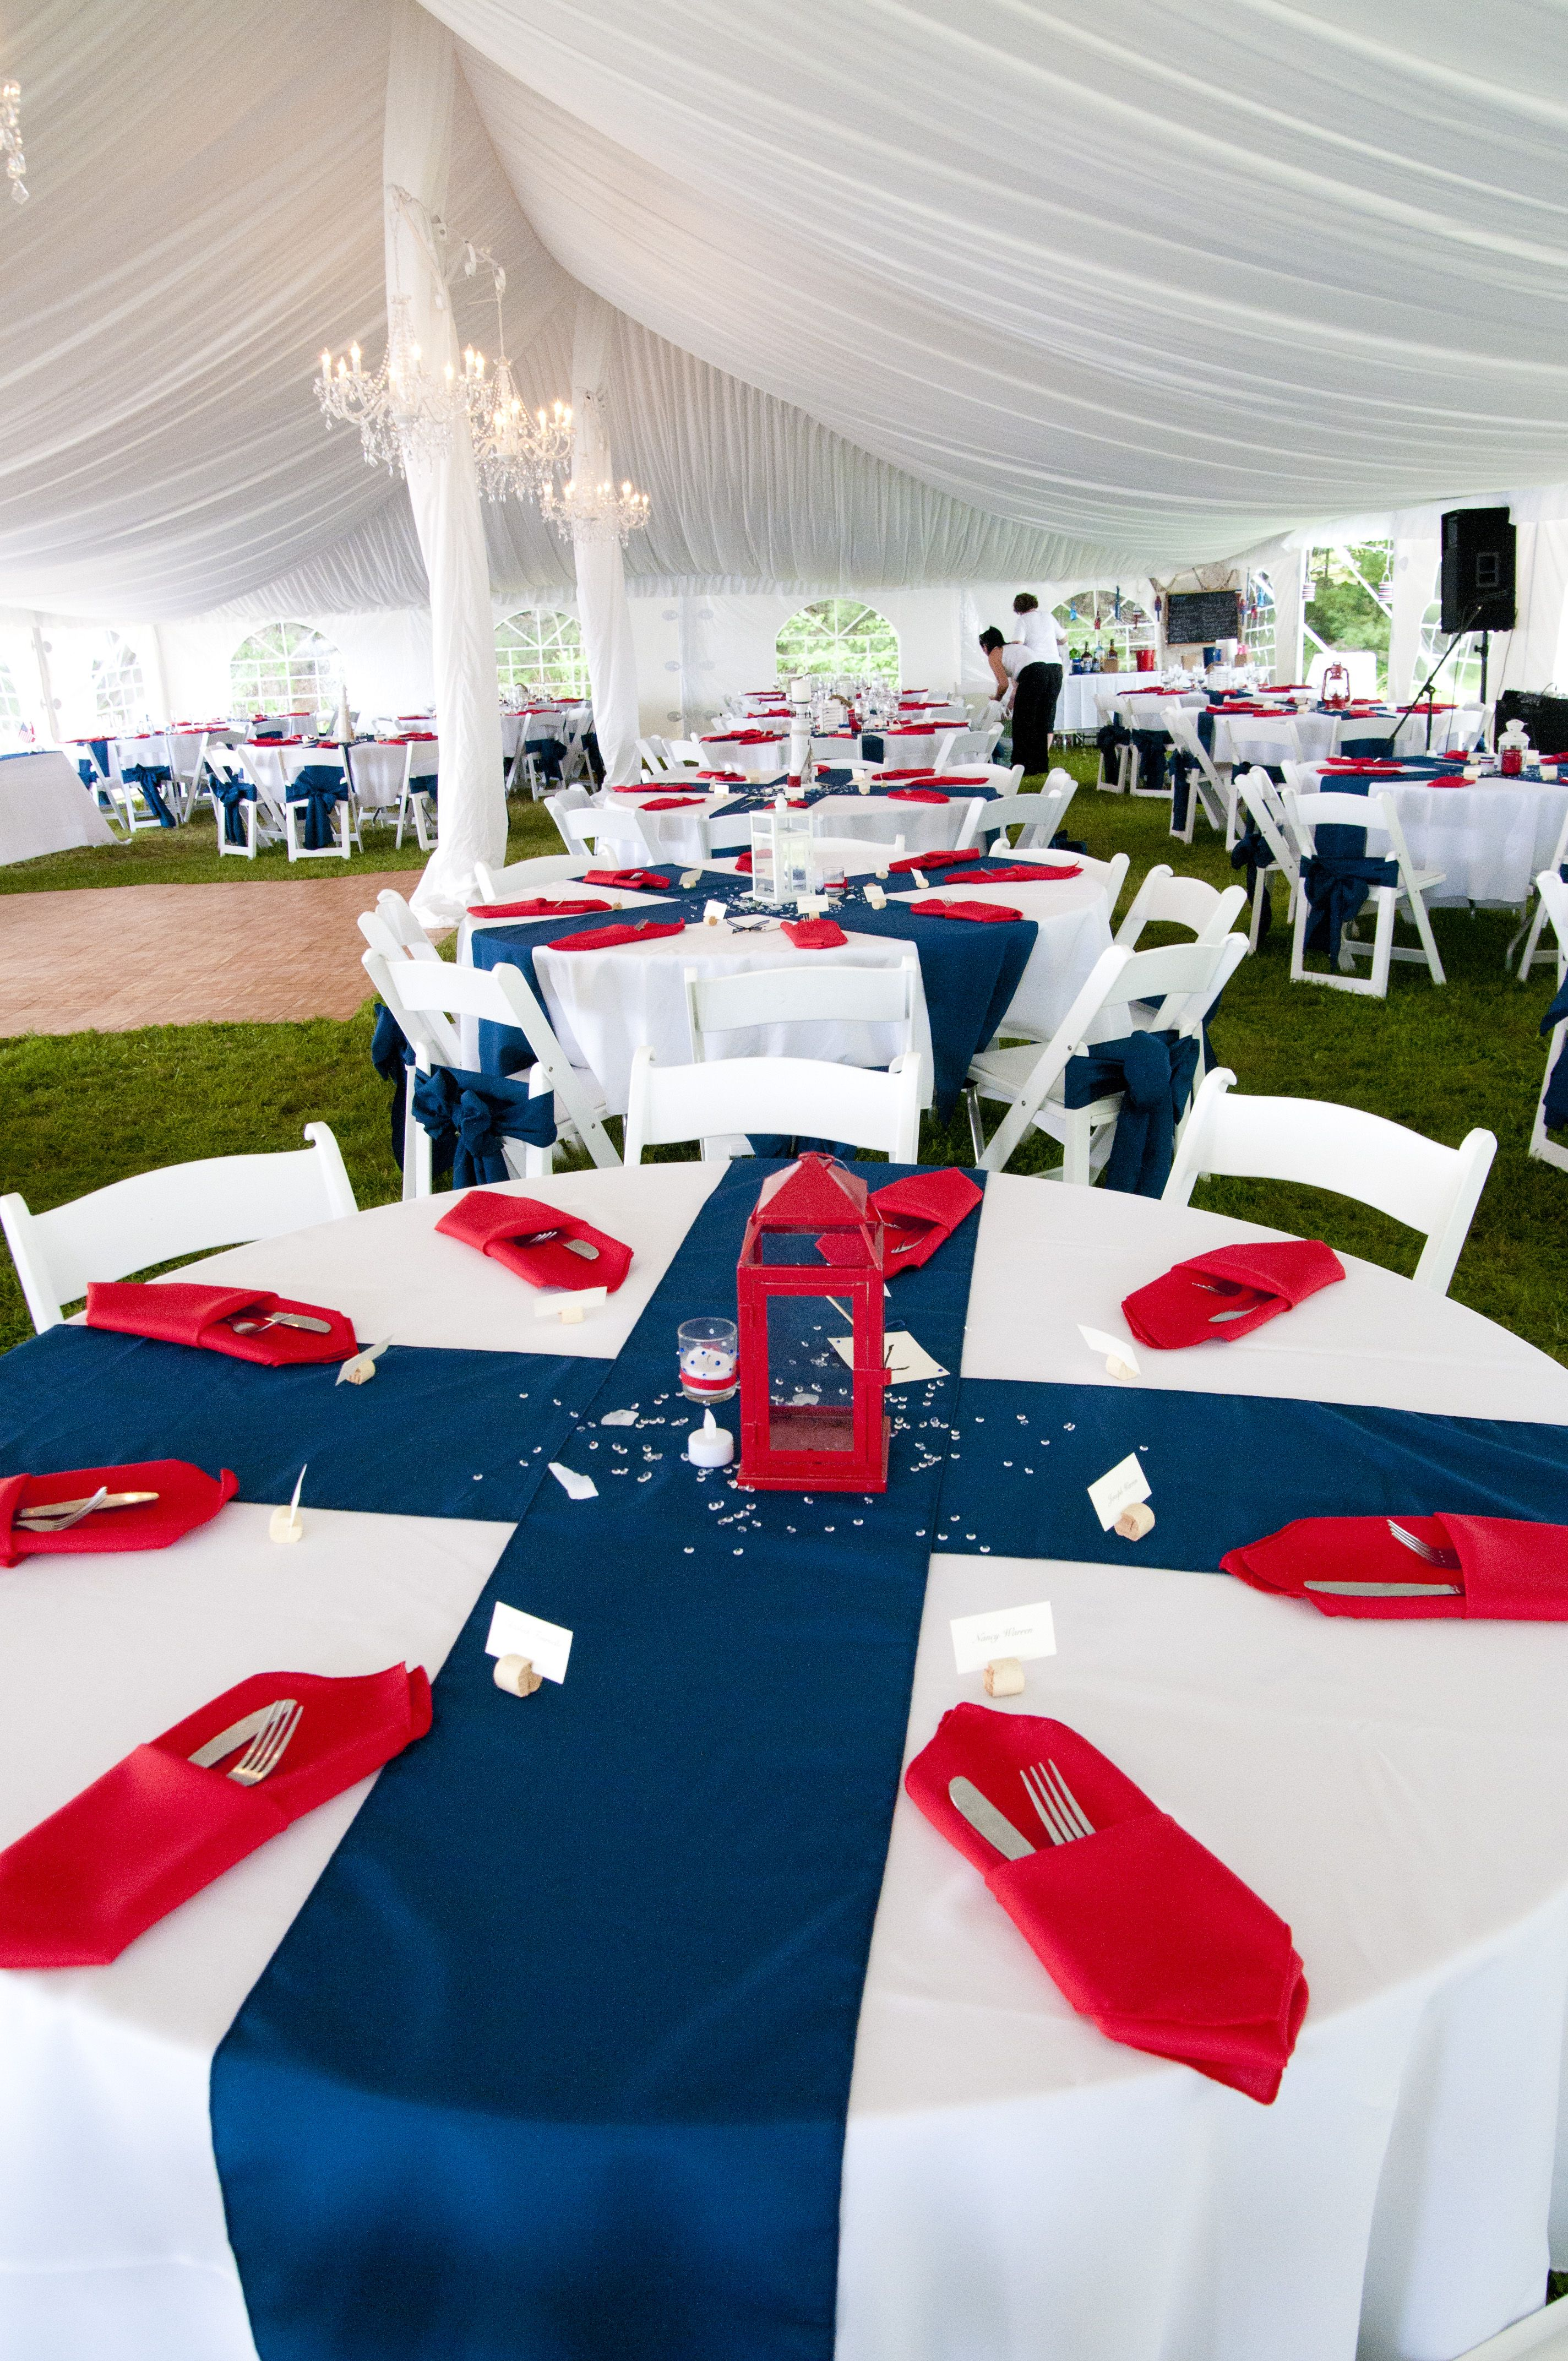 white table cloths, blue table runners, red napkins. A